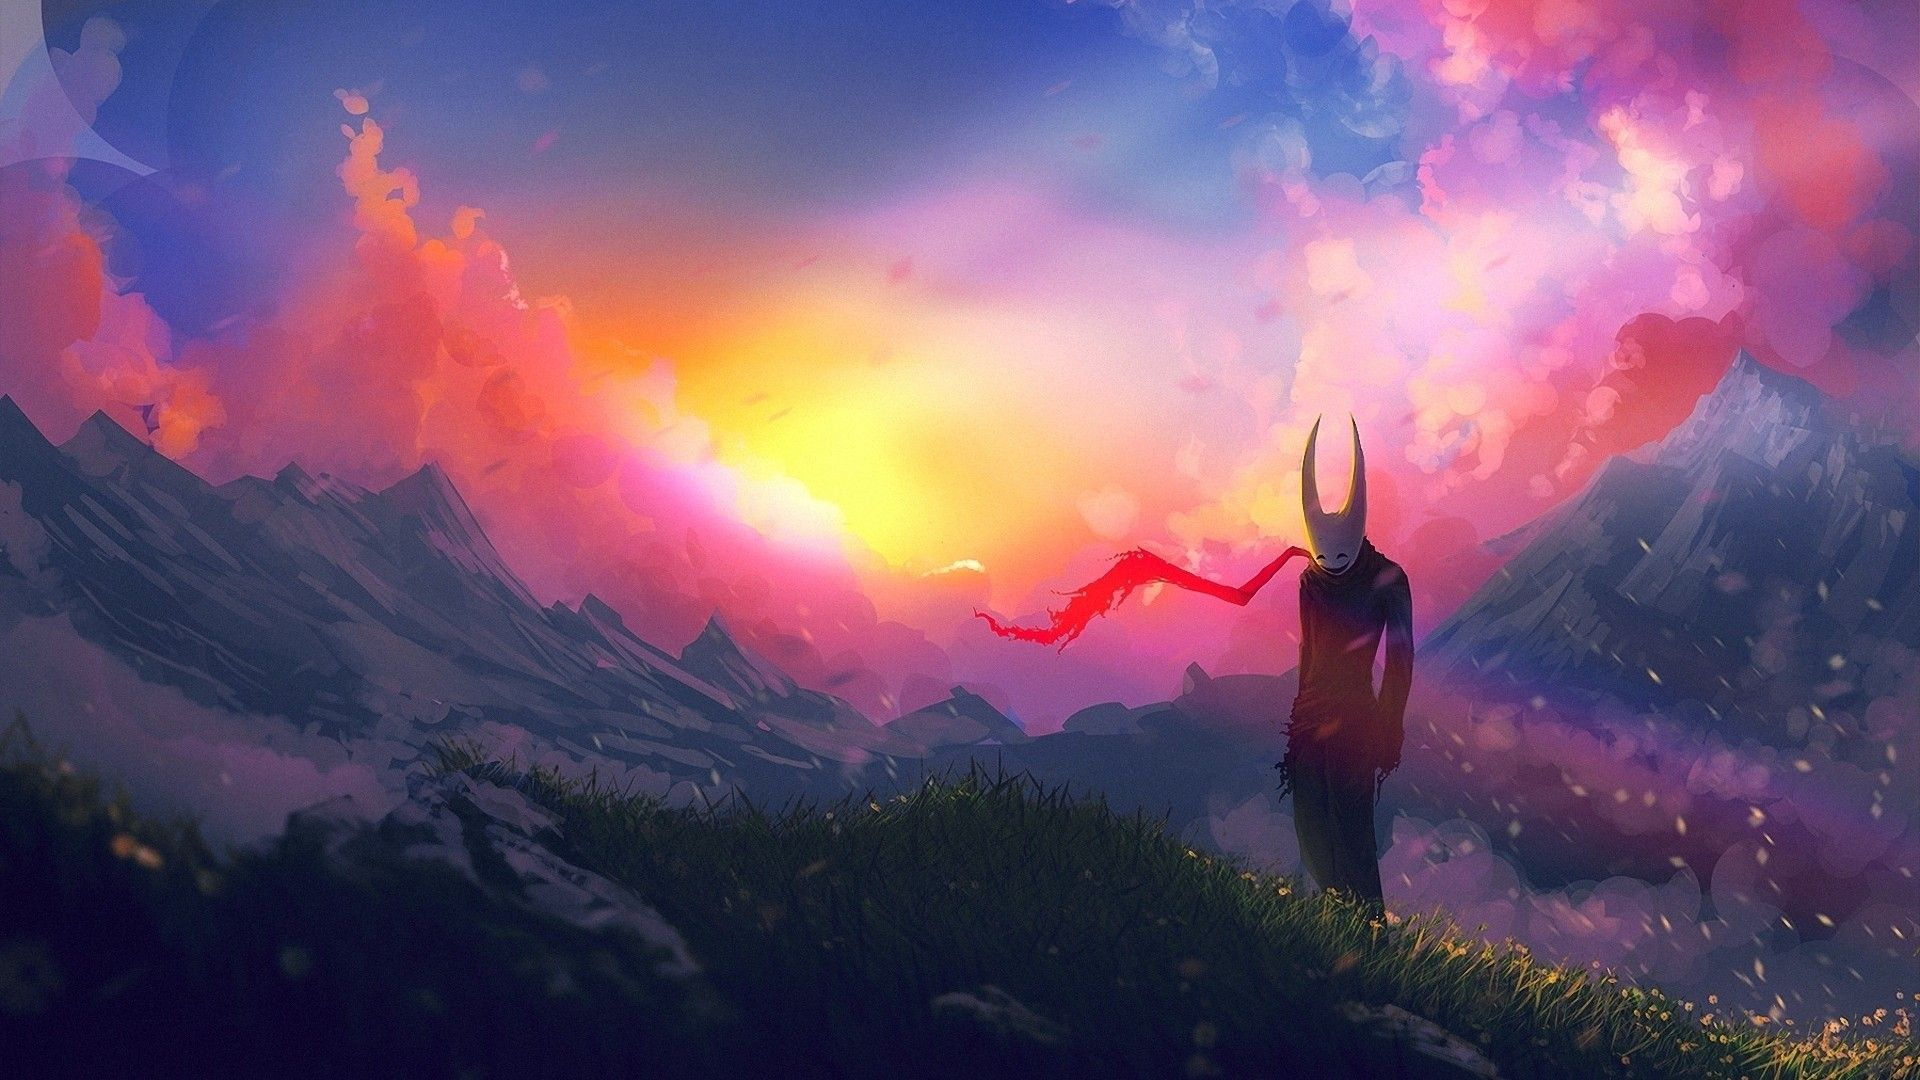 Anime In Nature Hd Anime 4k Wallpapers Images Backgrounds Anime Landscape Wallpaper 4k 491203 Hd Wallpaper Backgrounds Download